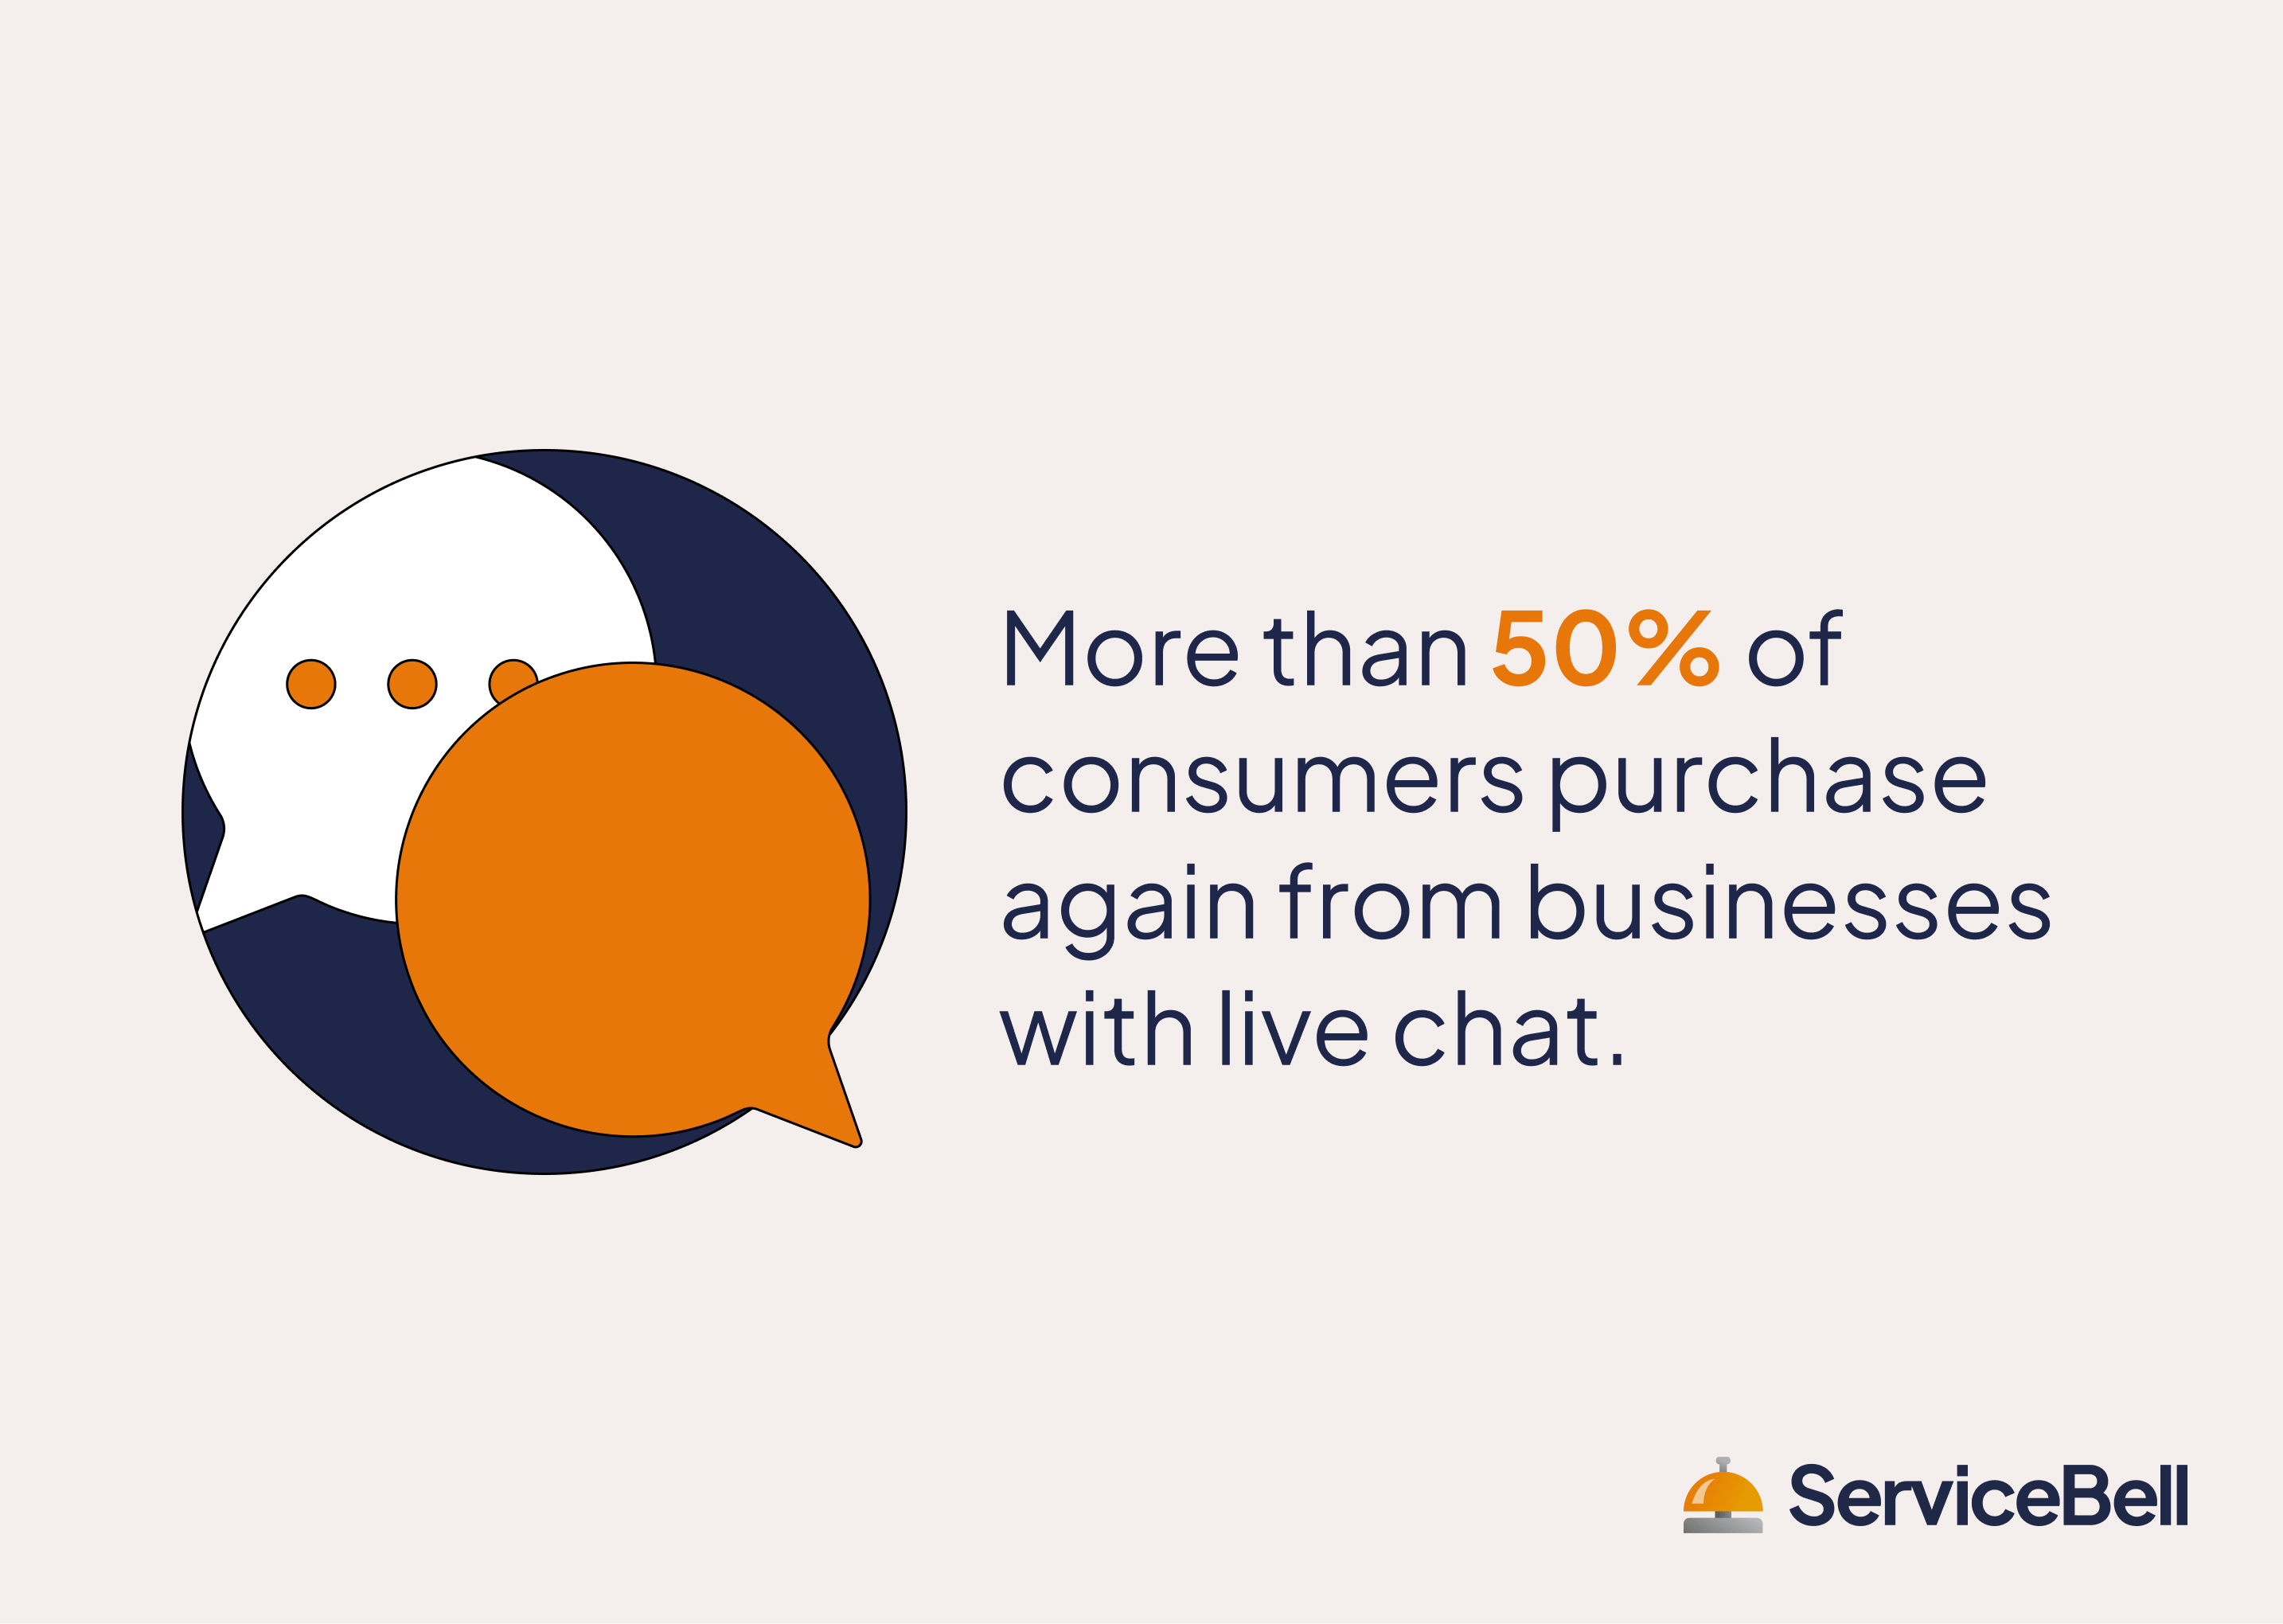 consumers purchase again from businesses with live chat